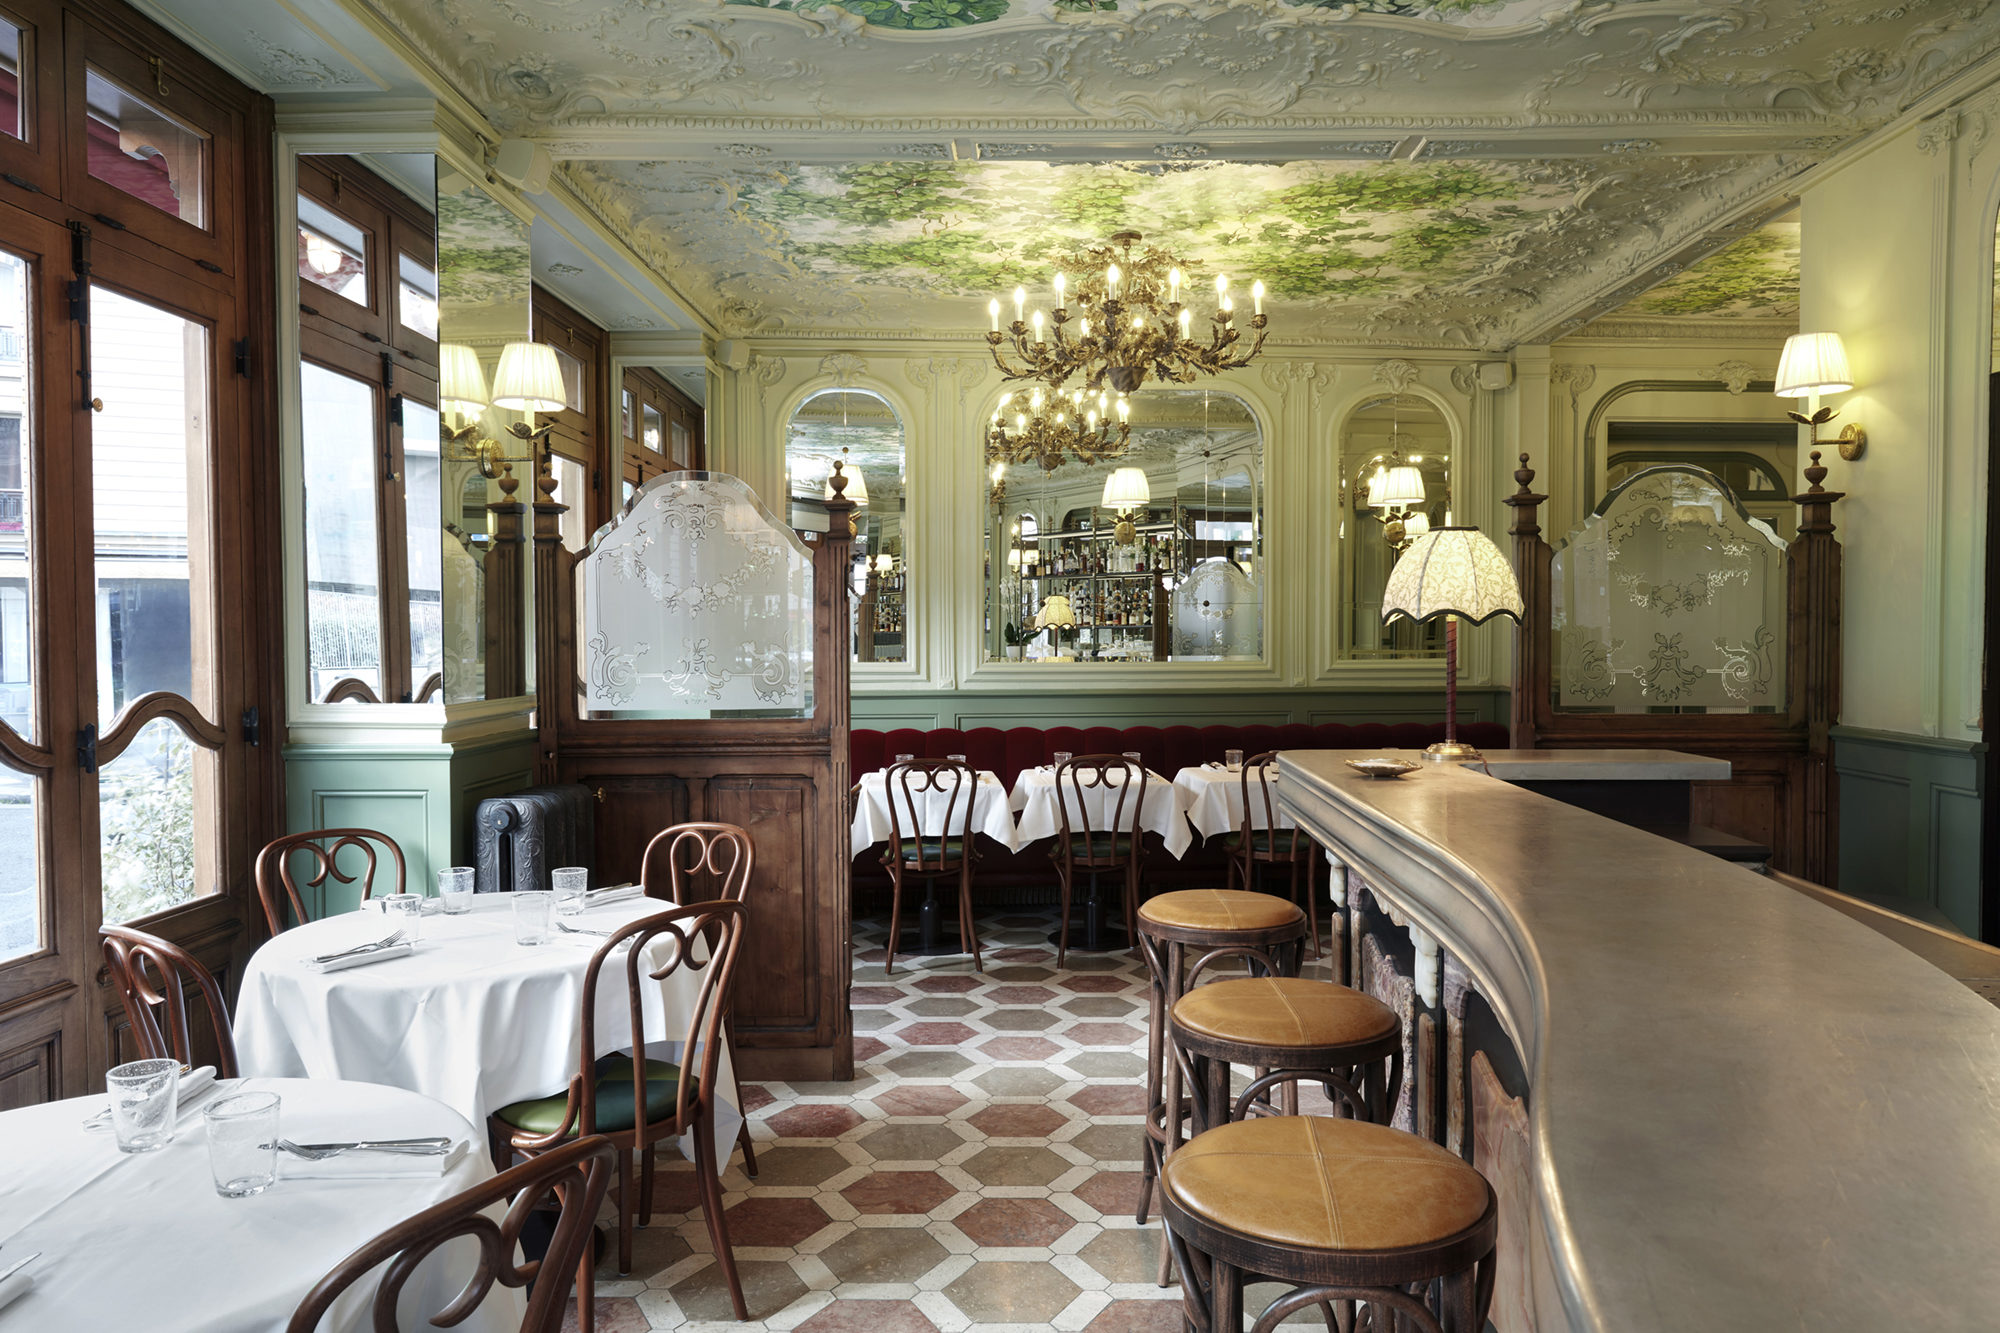 Le Chardenoux Paris bistrot Art Nouveau interiors with wooden tables, white table cloths and beautiful ceiling frescoes.